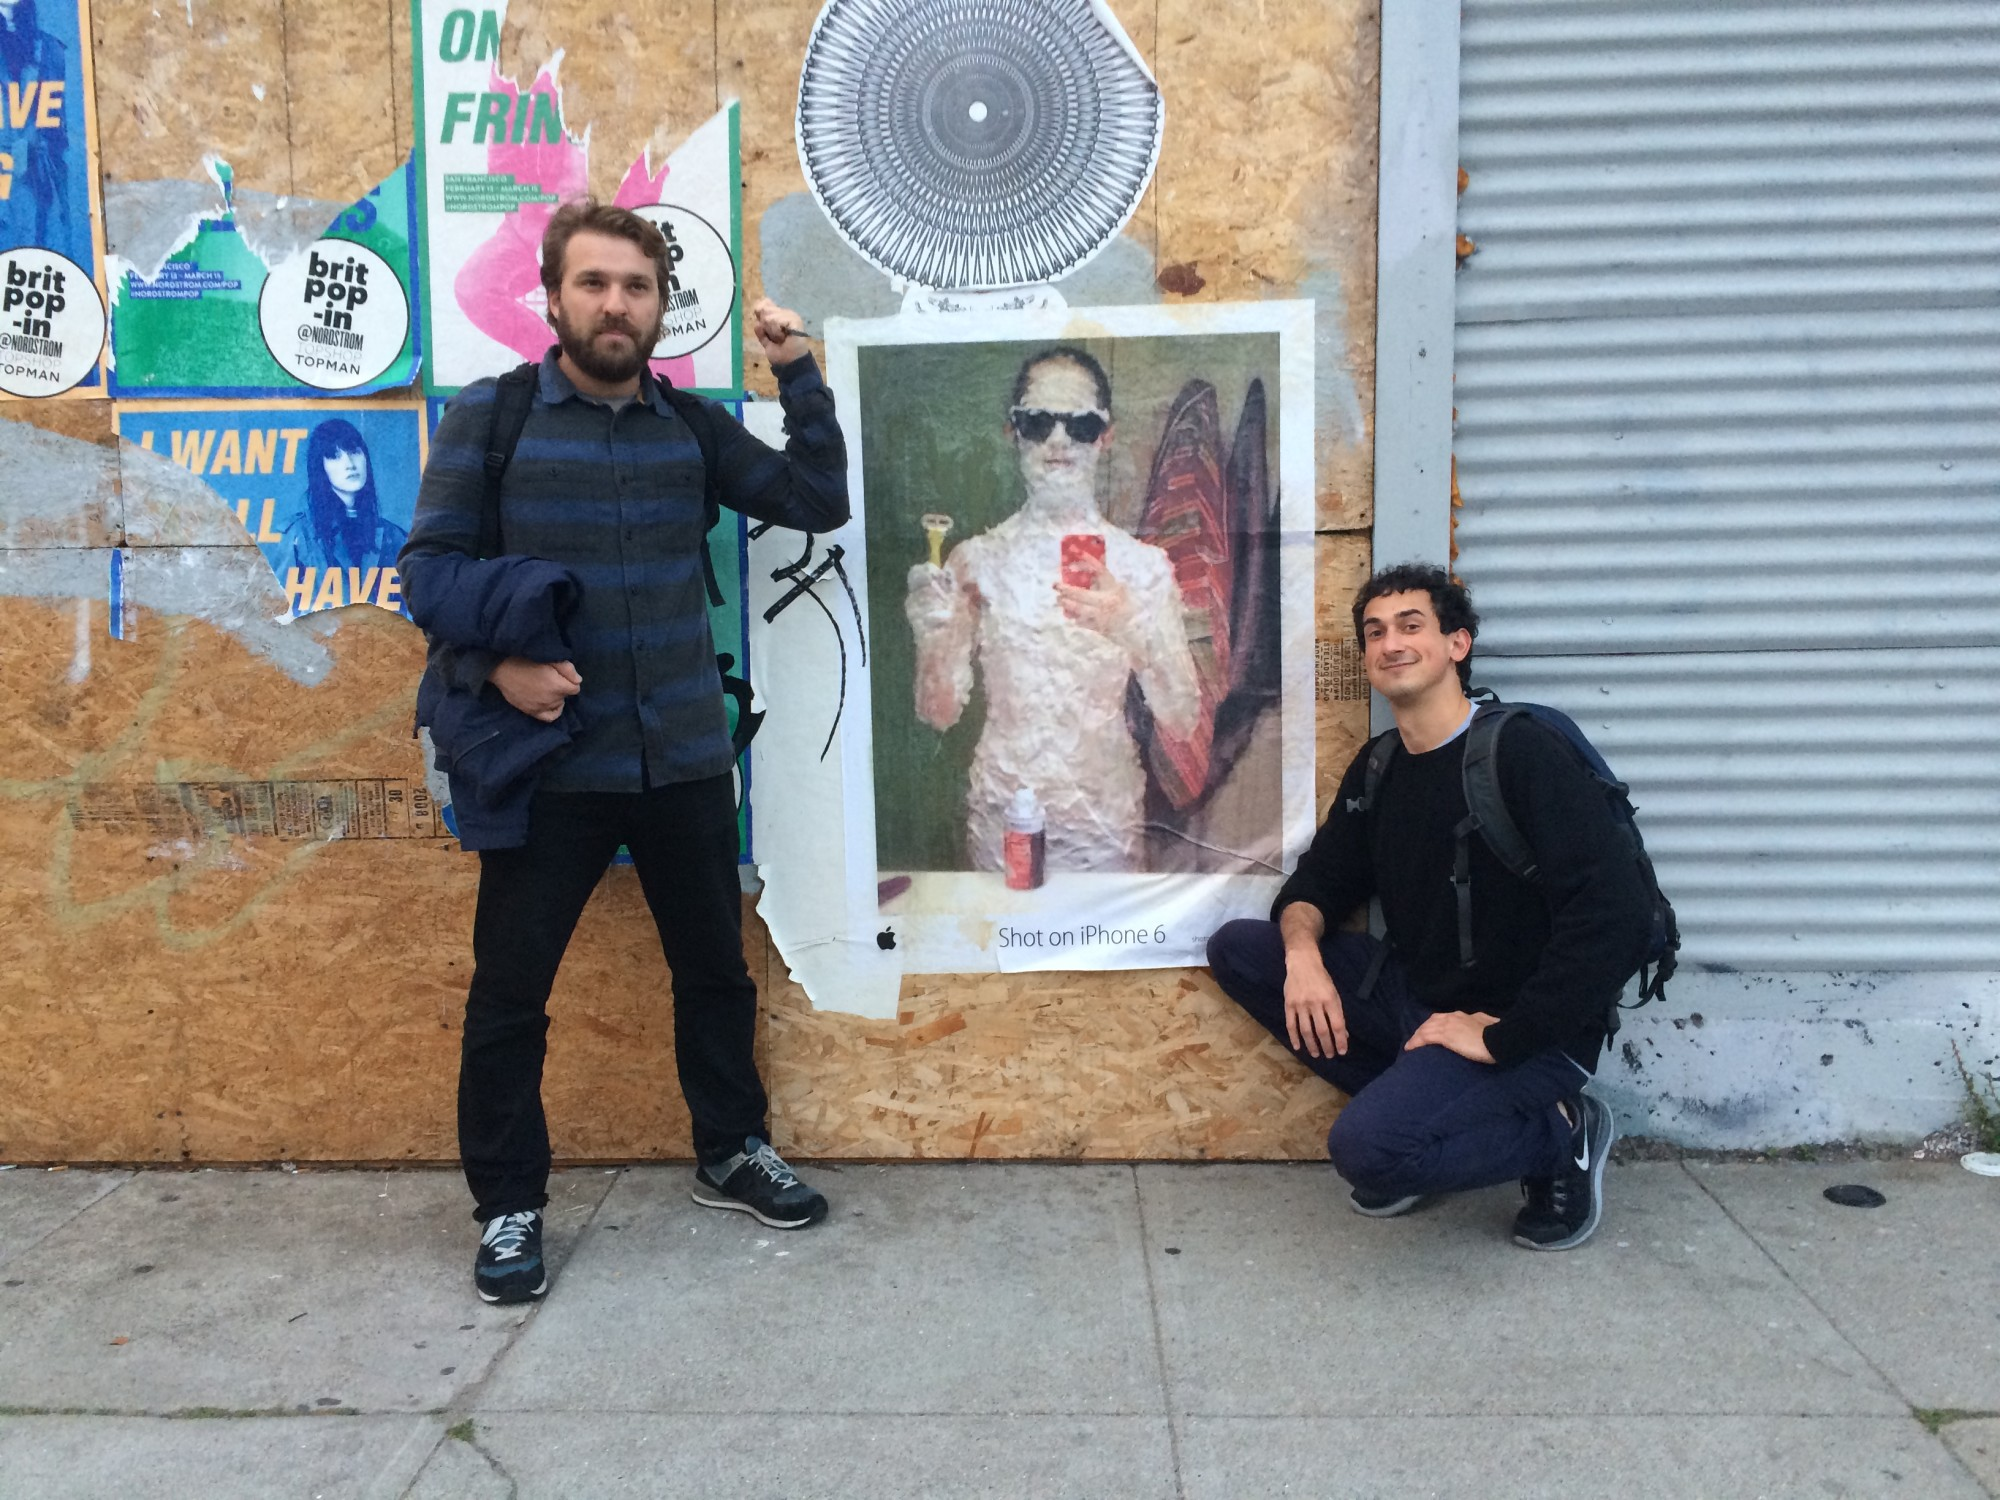 Pablo and Fabio after posting shot on iphone poster